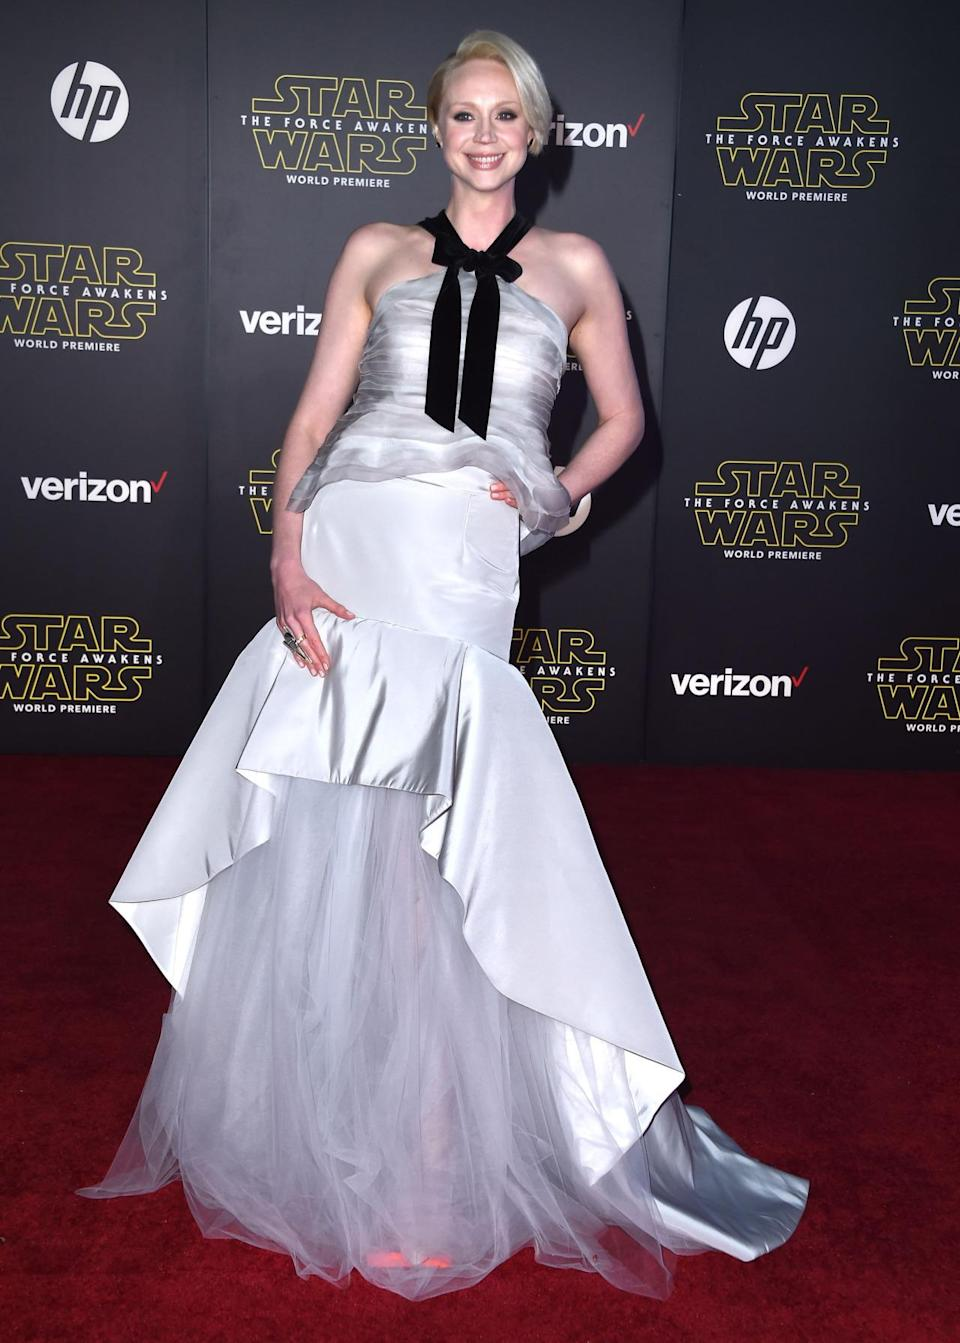 <p>Christie wore a floor-length silver Oscar de la Renta gown to the premiere of the new <i>Star Wars</i> movie, in which she stars. With a black velvet bow and serious bling on her fingers, she couldn't look less like her <i>Game of Thrones</i> character.</p><p><i>Photo: Getty Images</i><br></p>